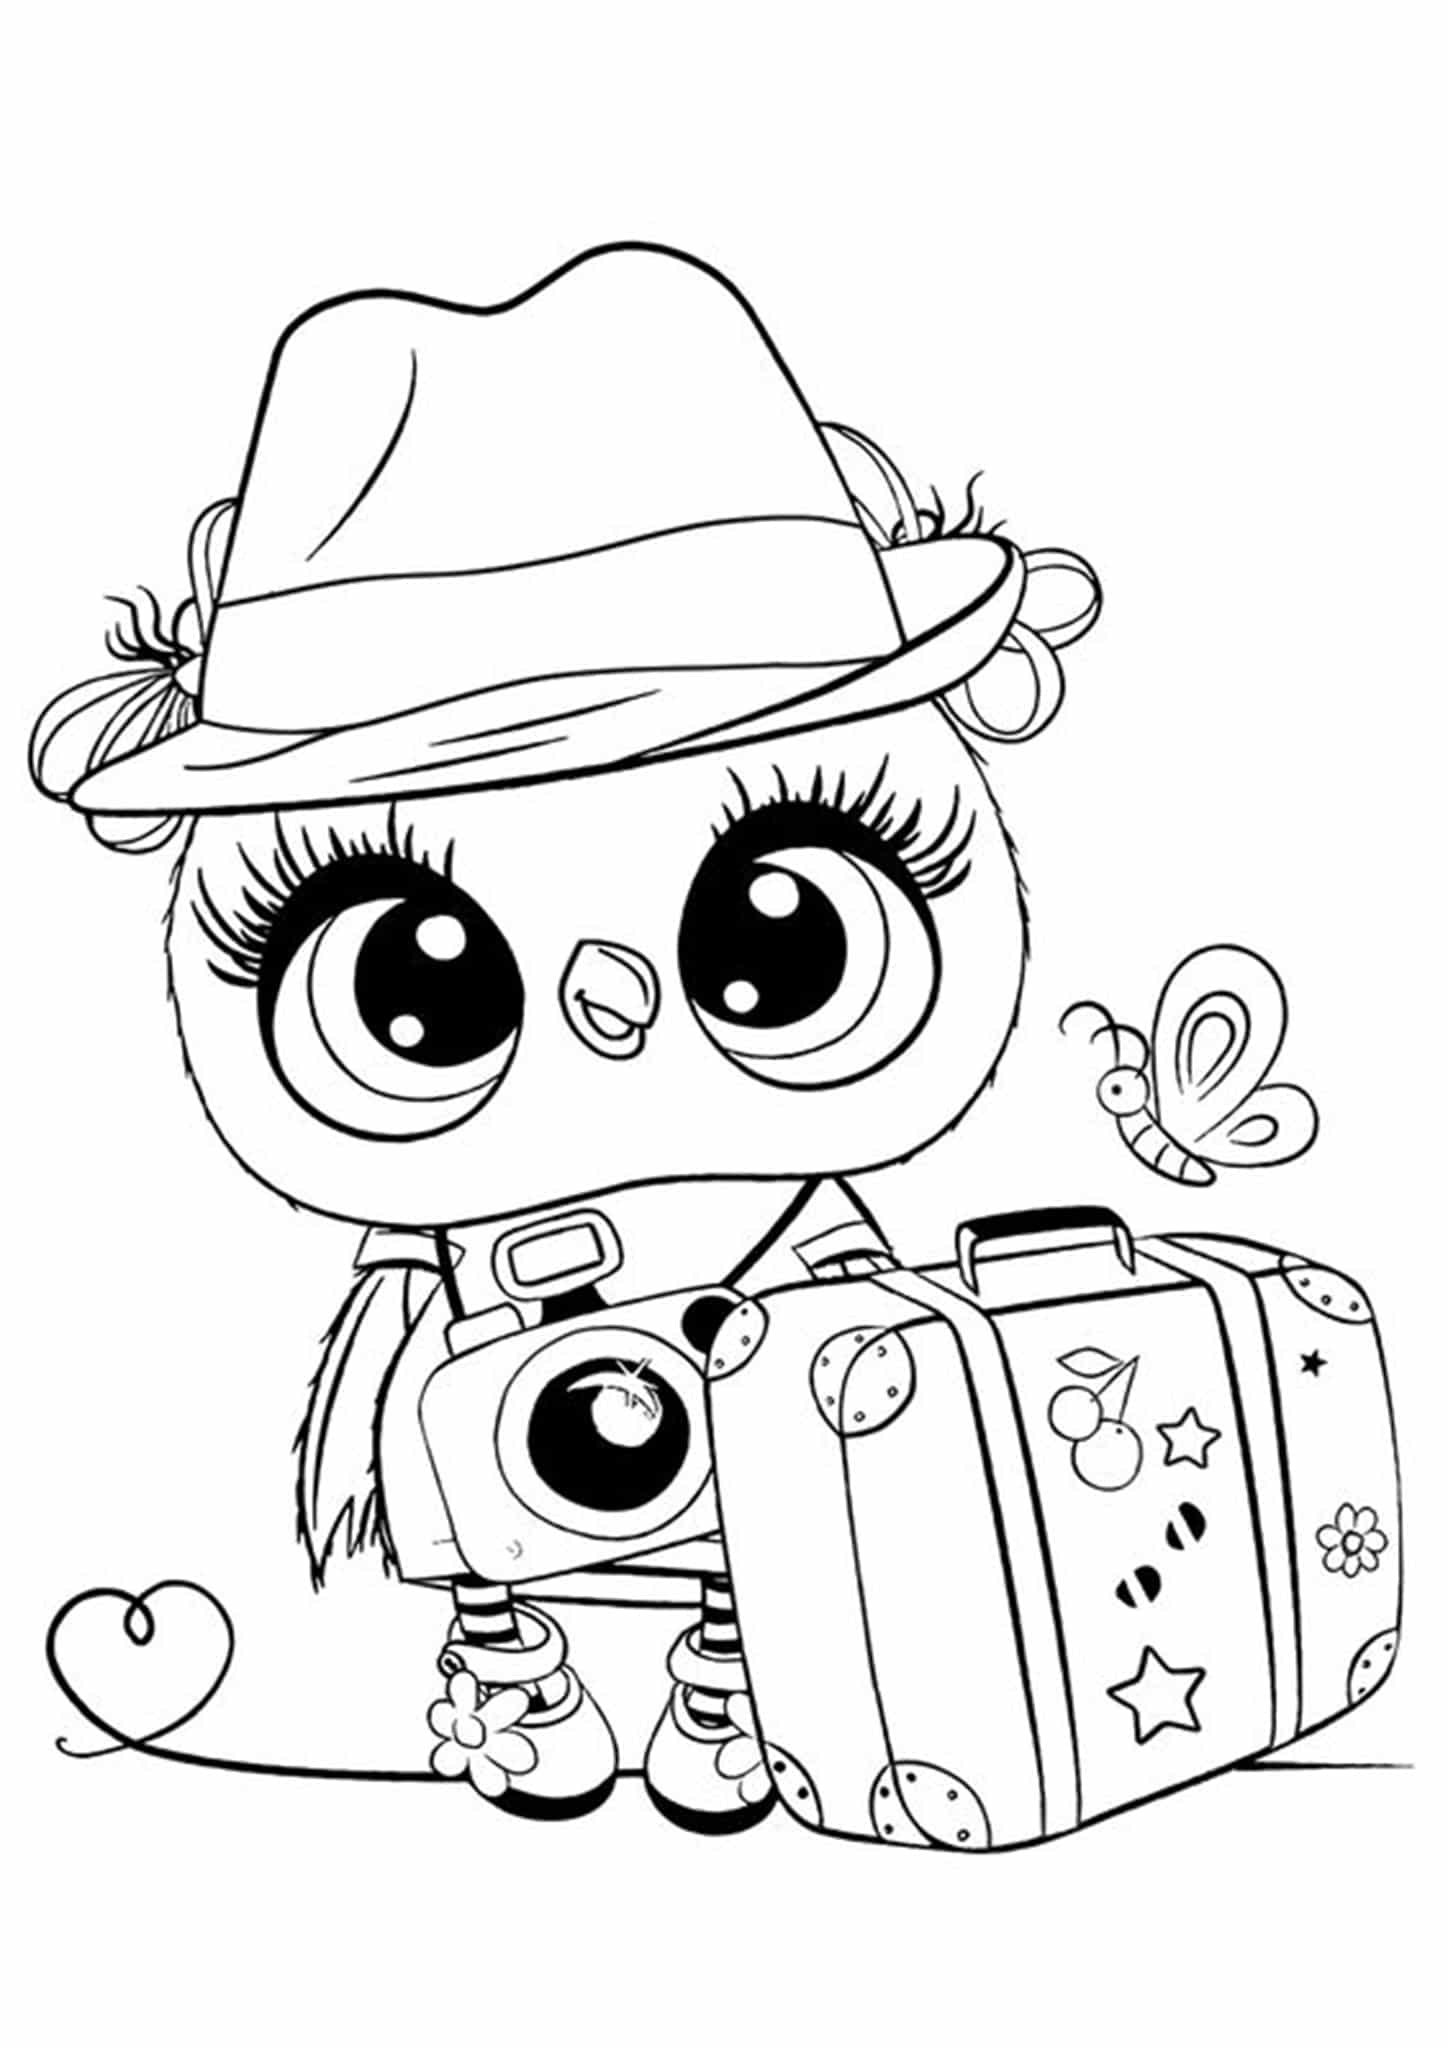 fun coloring pages to print caillou coloring pages best coloring pages for kids fun pages coloring to print